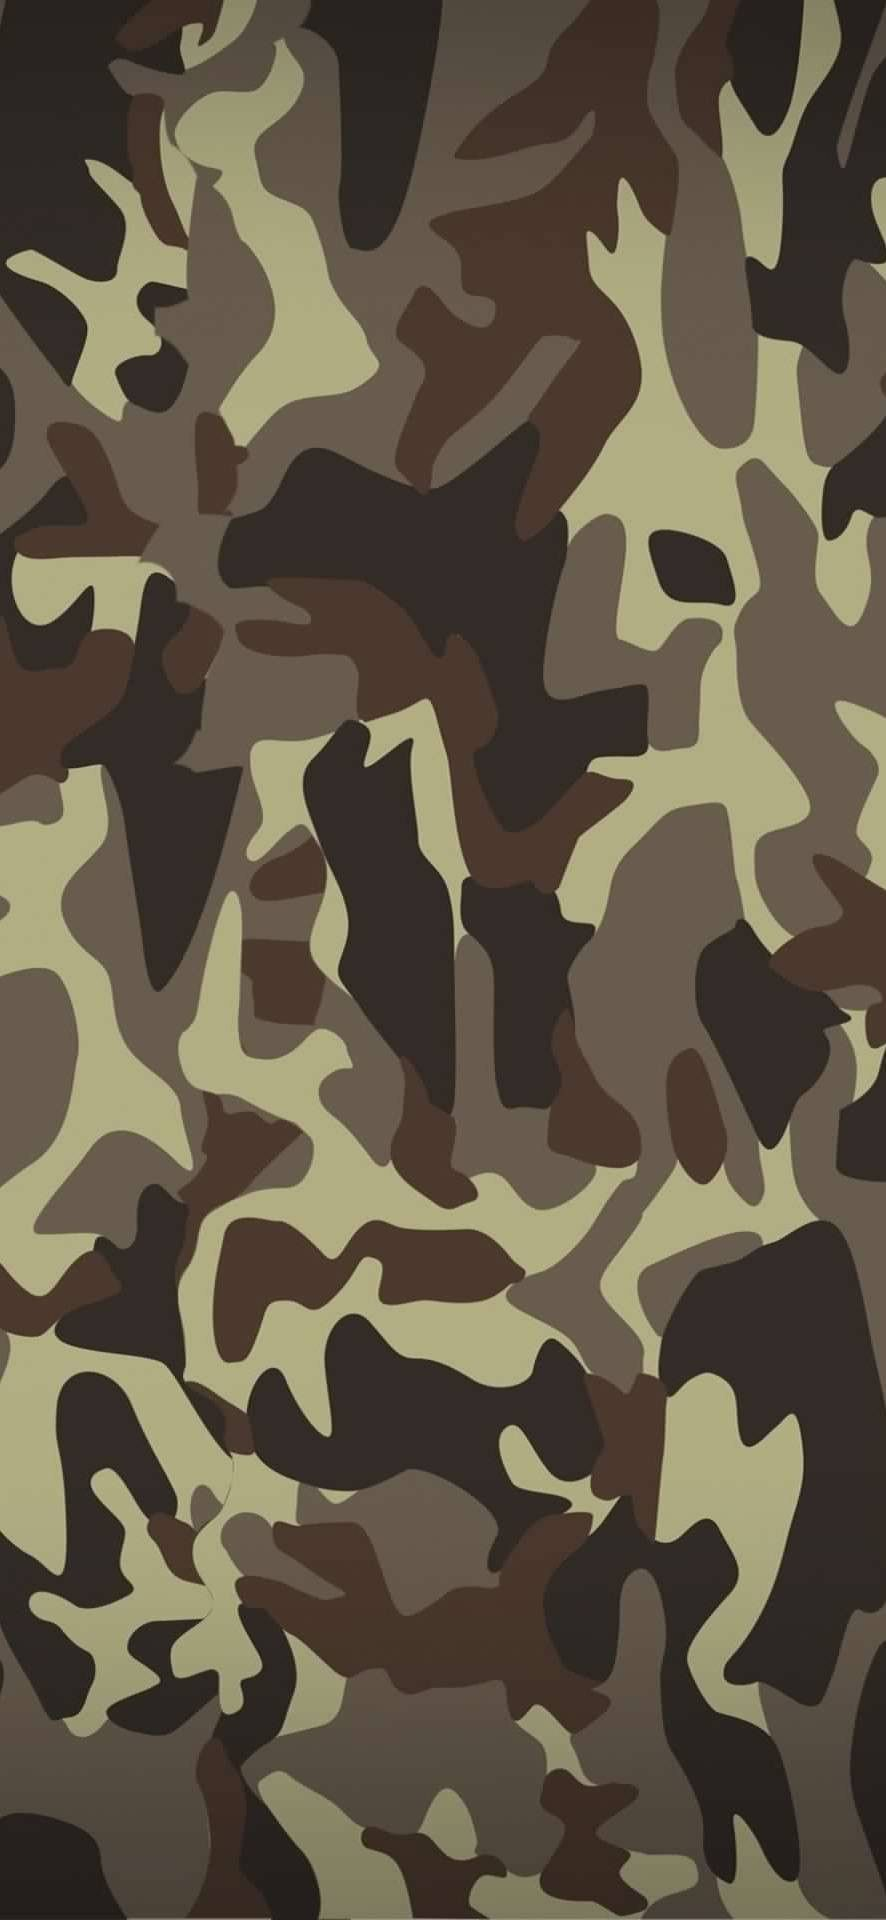 Pin By Luis Mauricio On Camo In 2020 Camouflage Wallpaper Metal Art Prints Camo Wallpaper